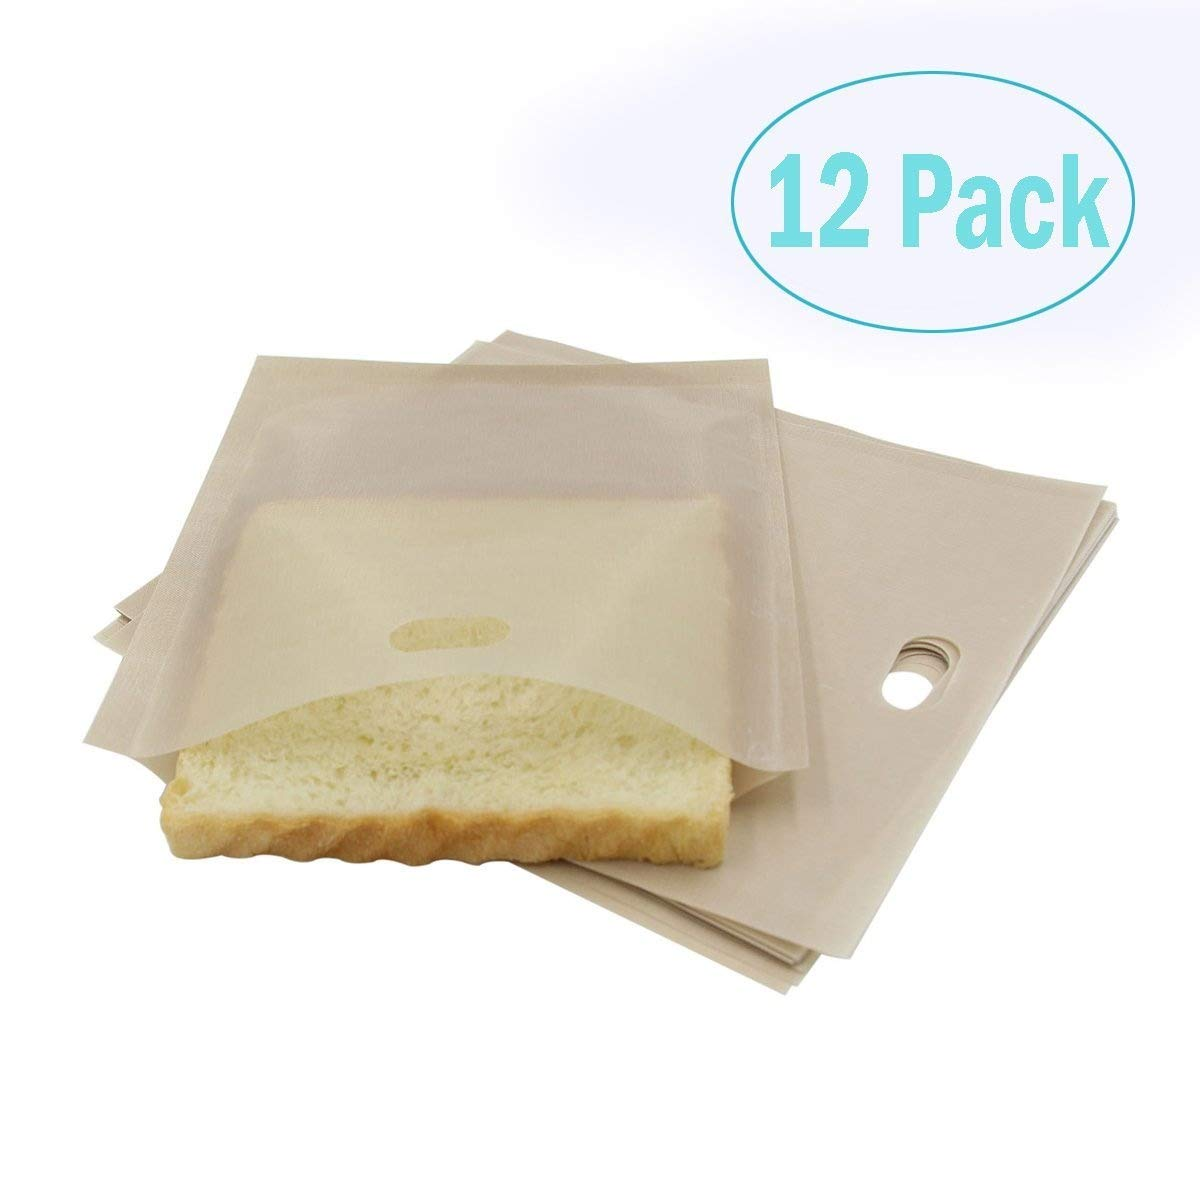 Toaster Bags (12 Pack) for Grilled Cheese Sandwiches, Reusable and Non-stick by Fun.U